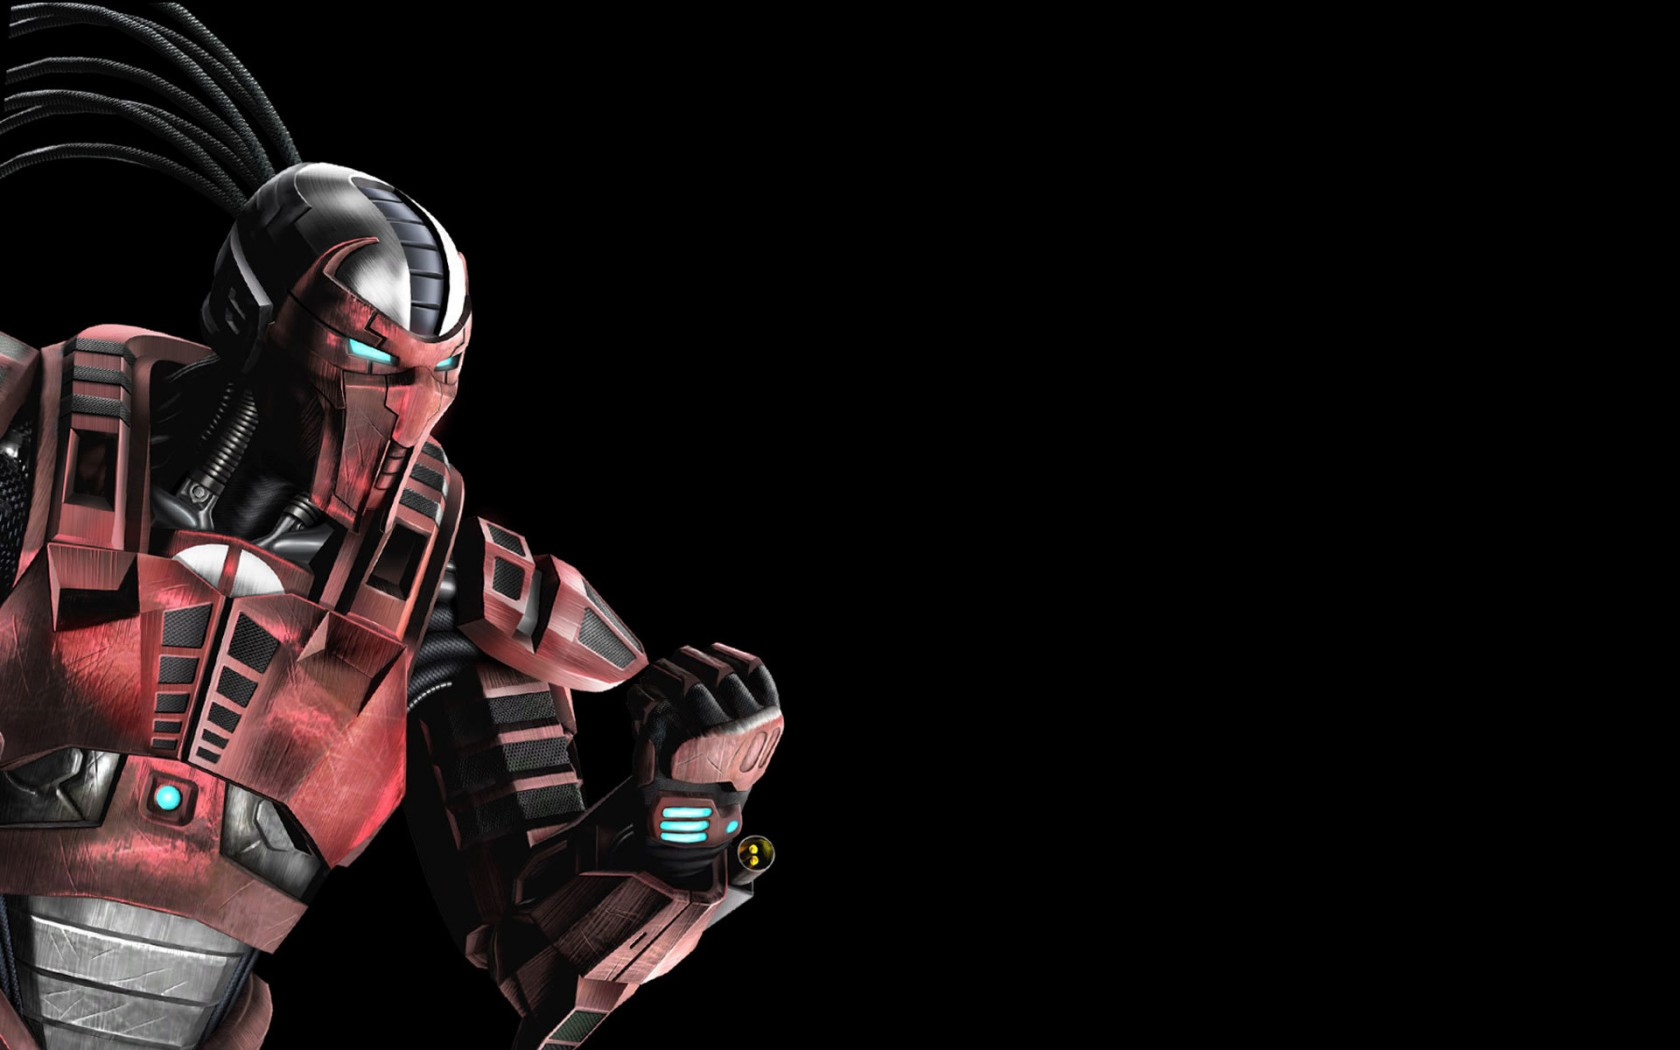 Mortal Kombat wallpaper Sektor Mortal Kombat games fan site 1680x1050